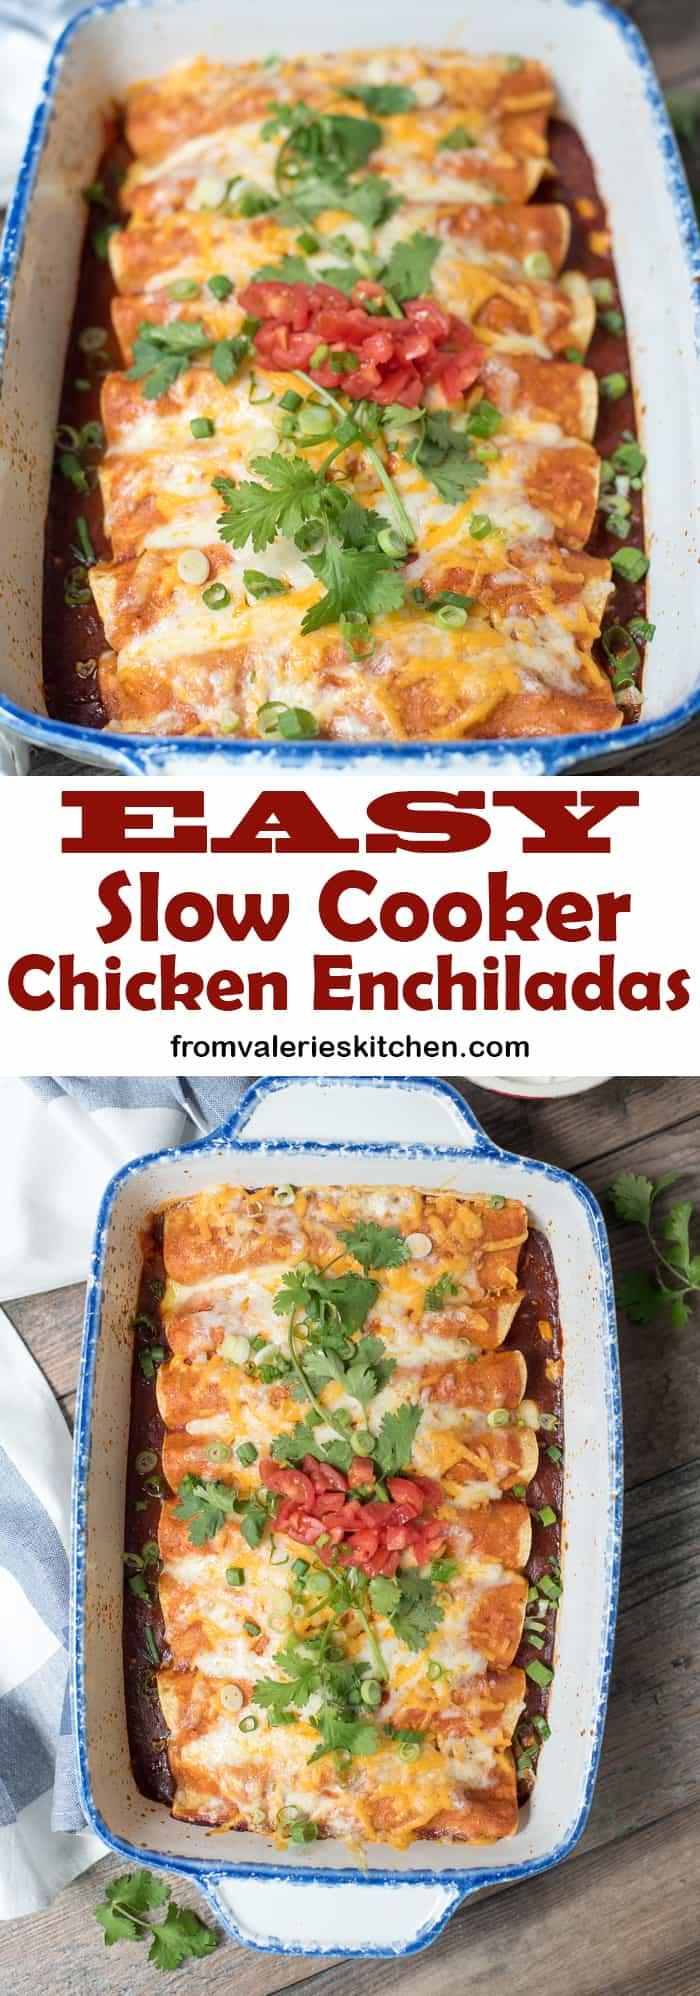 A two image vertical collage of Slow Cooker Chicken Enchiladas with text overlay.